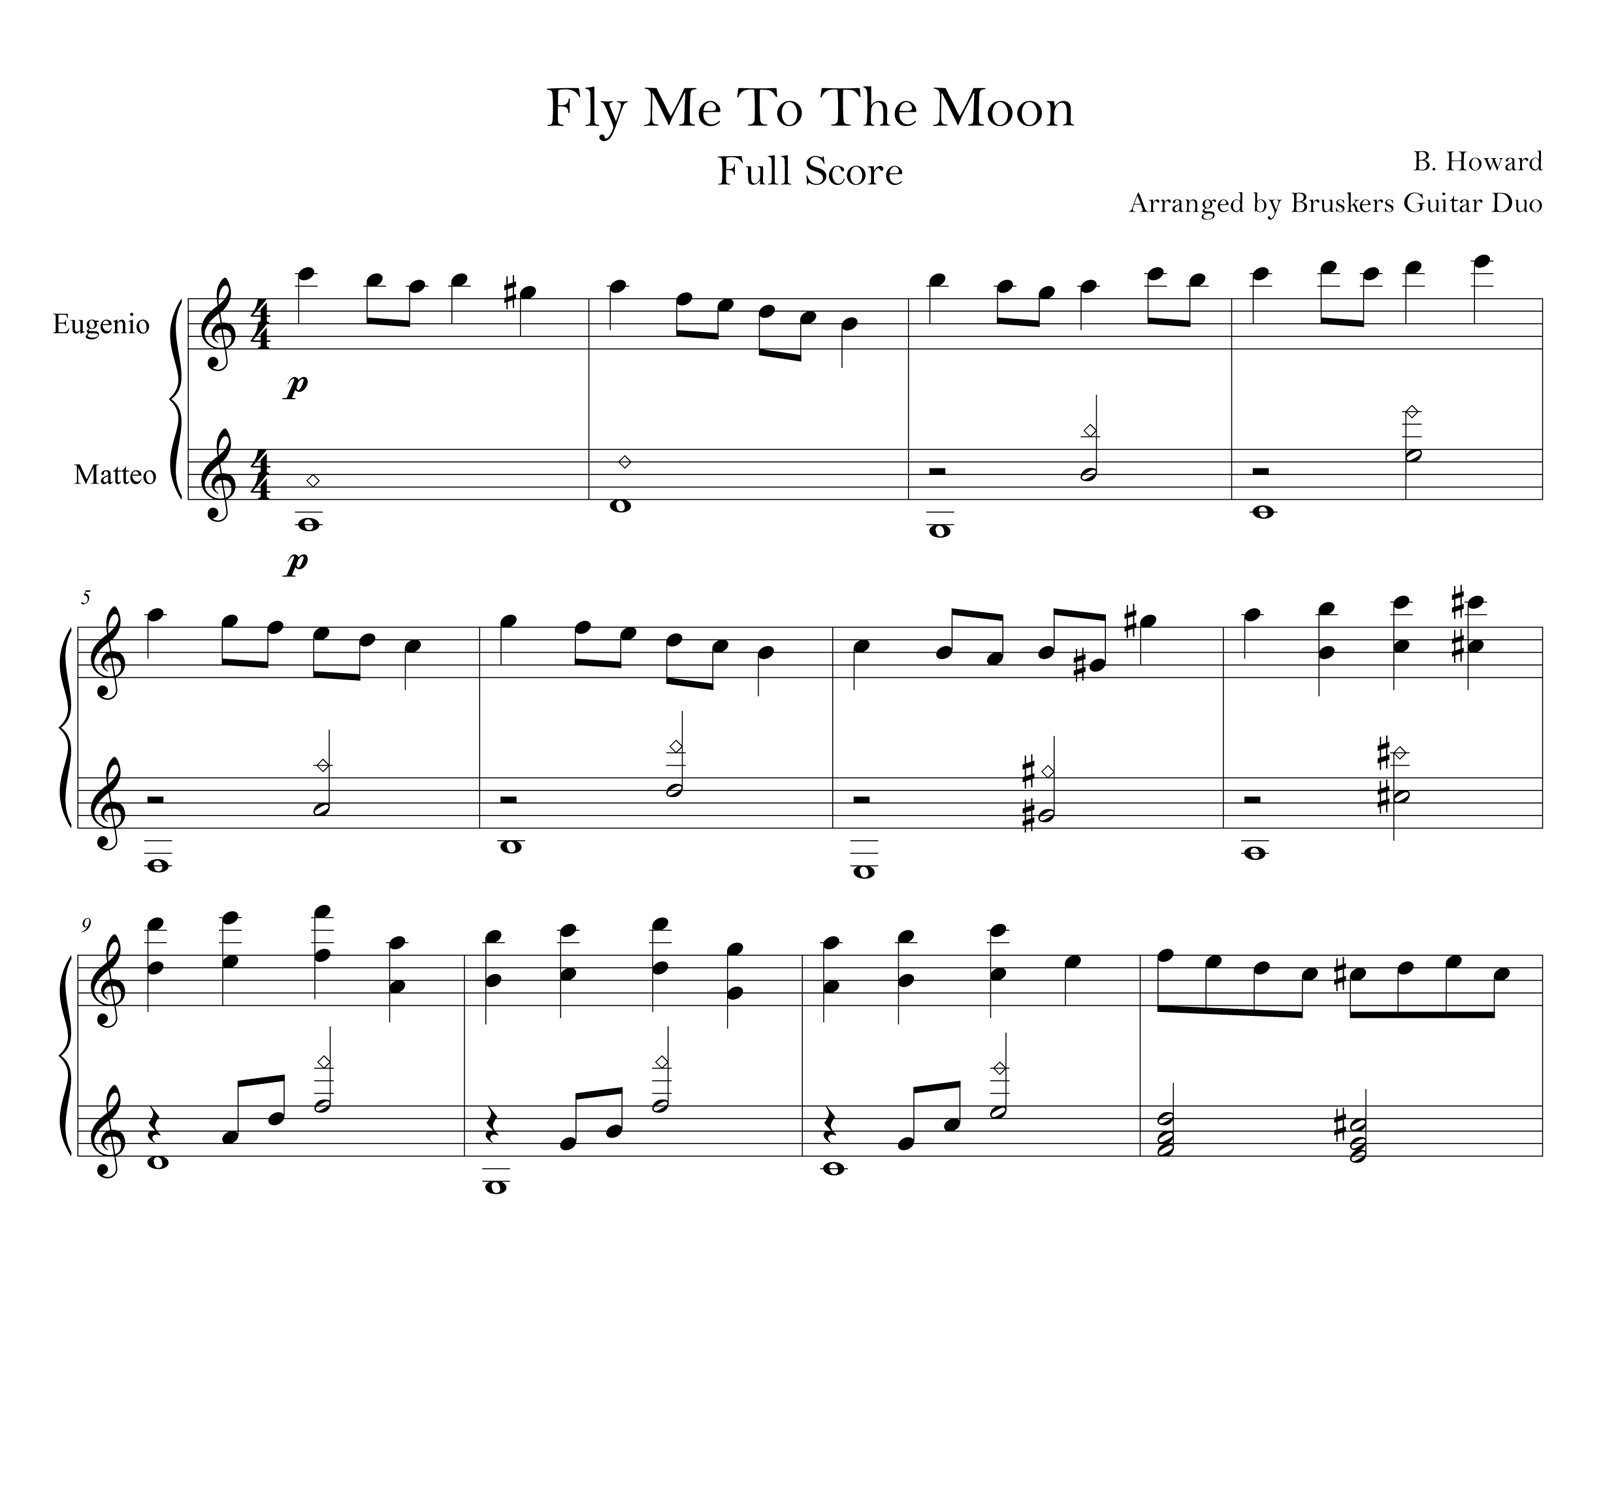 Fly Me To The Moon - Score scrap - Bruskers Guitar Duo